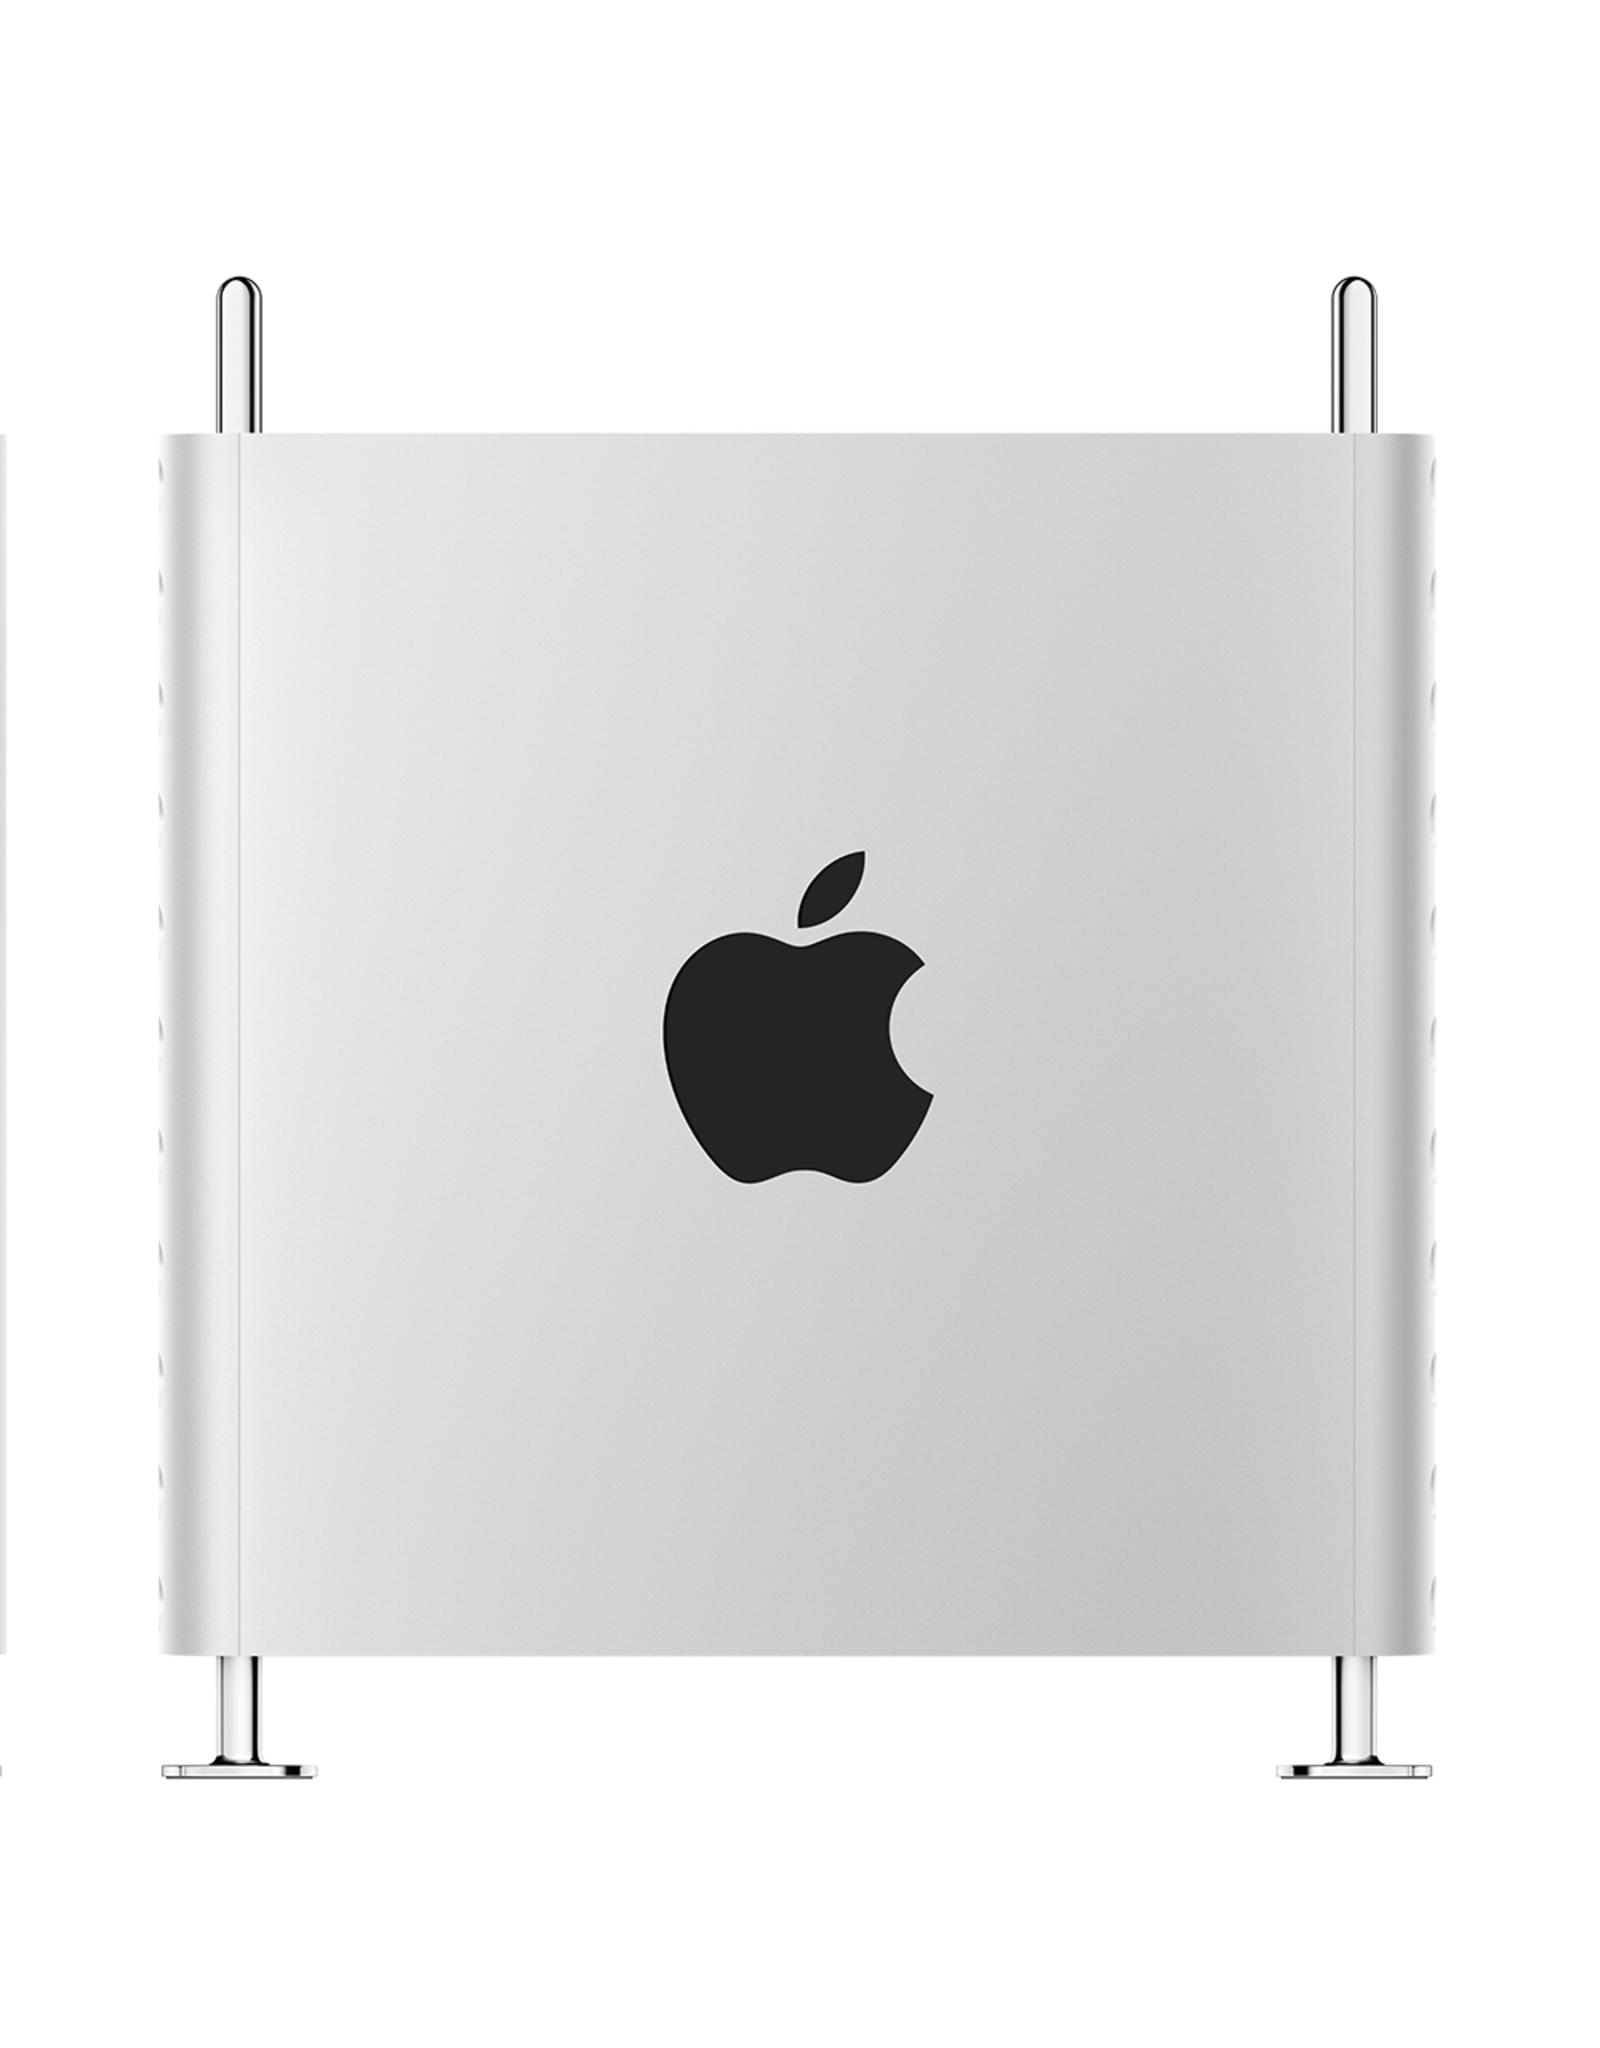 Apple Mac Pro 3.5GHz 8‑core Intel Xeon W / 32GB (4 × 8GB) of DDR4 ECC memory / Radeon Pro 580X with 8GB of GDDR5 memory / 256GB of SSD storage / Stainless steel frame with feet / Magic Mouse 2 / Magic Keyboard with Numeric Keypad — US English